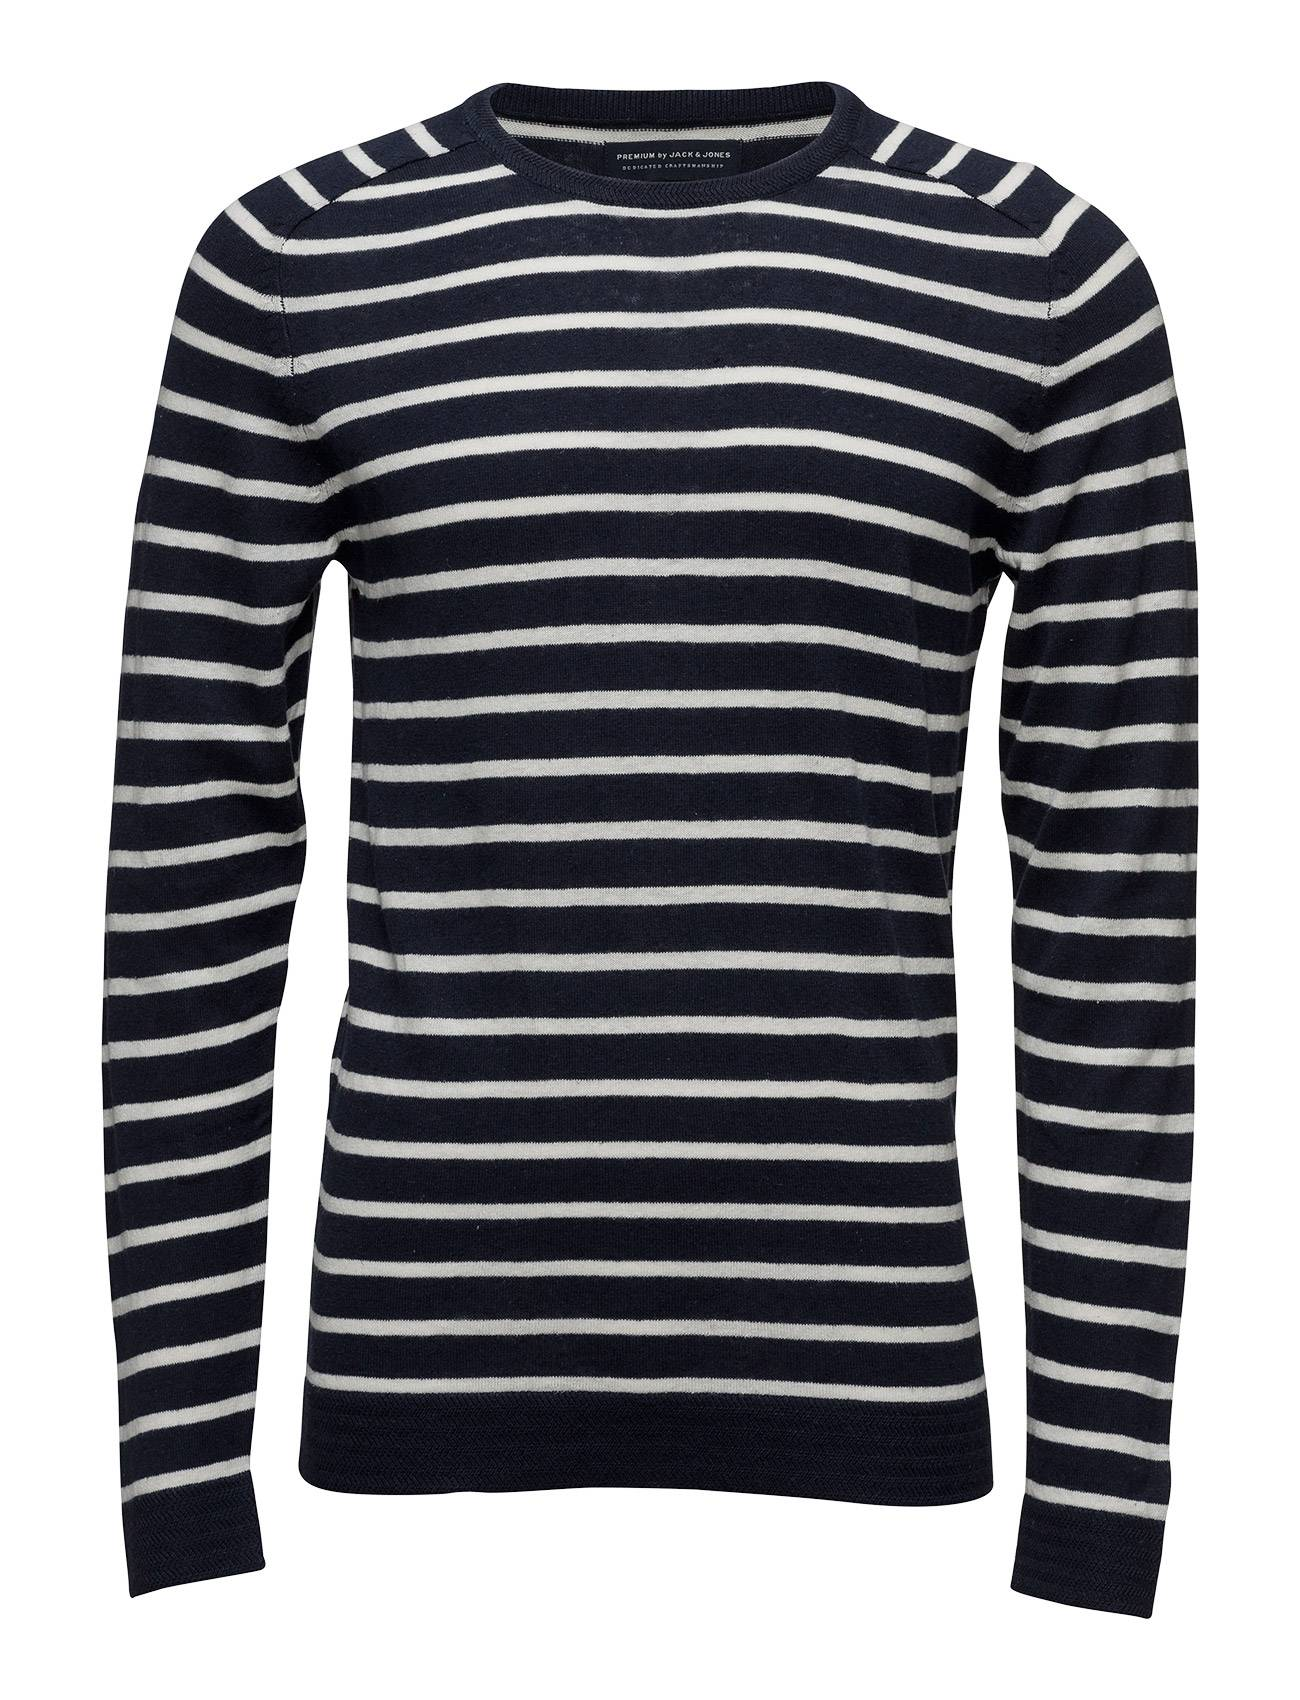 Jack & Jones Premium Jpribe Knit Crew Neck Stripe Sts